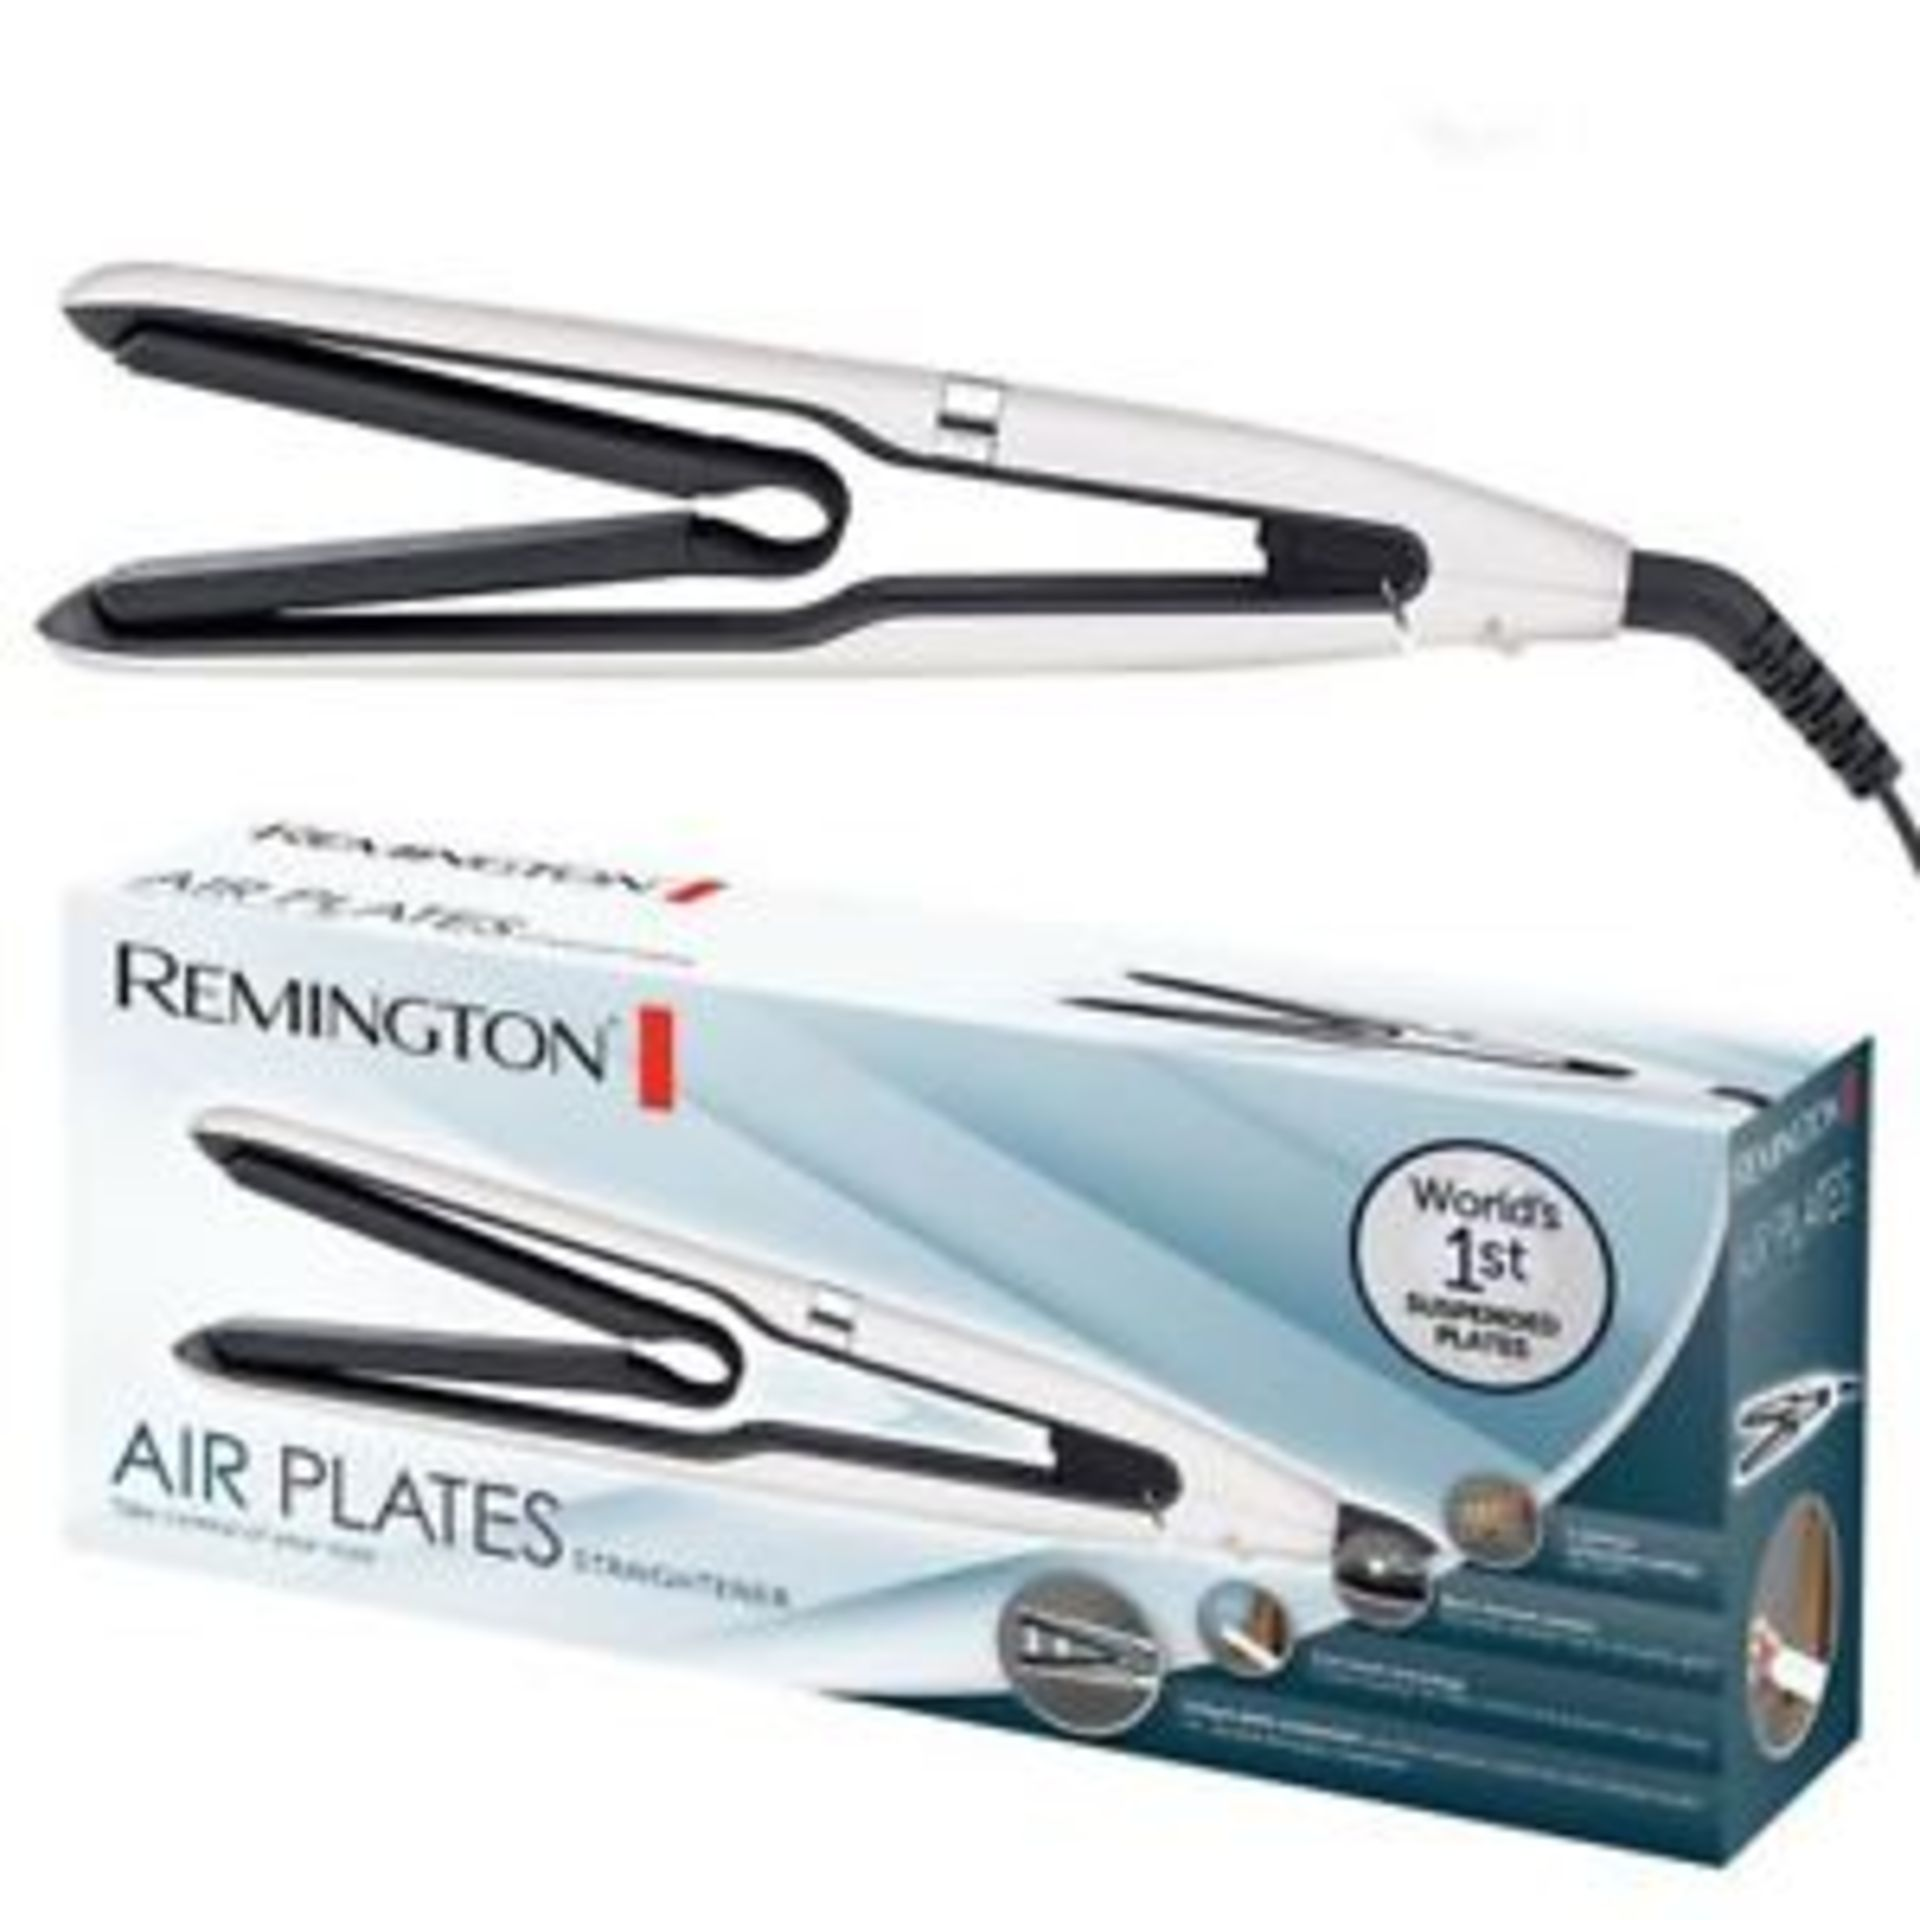 Lot 11895 - V Brand New Remington Air Plates Straightener - Argos Price £79.99 - 5 Optimum Temperature